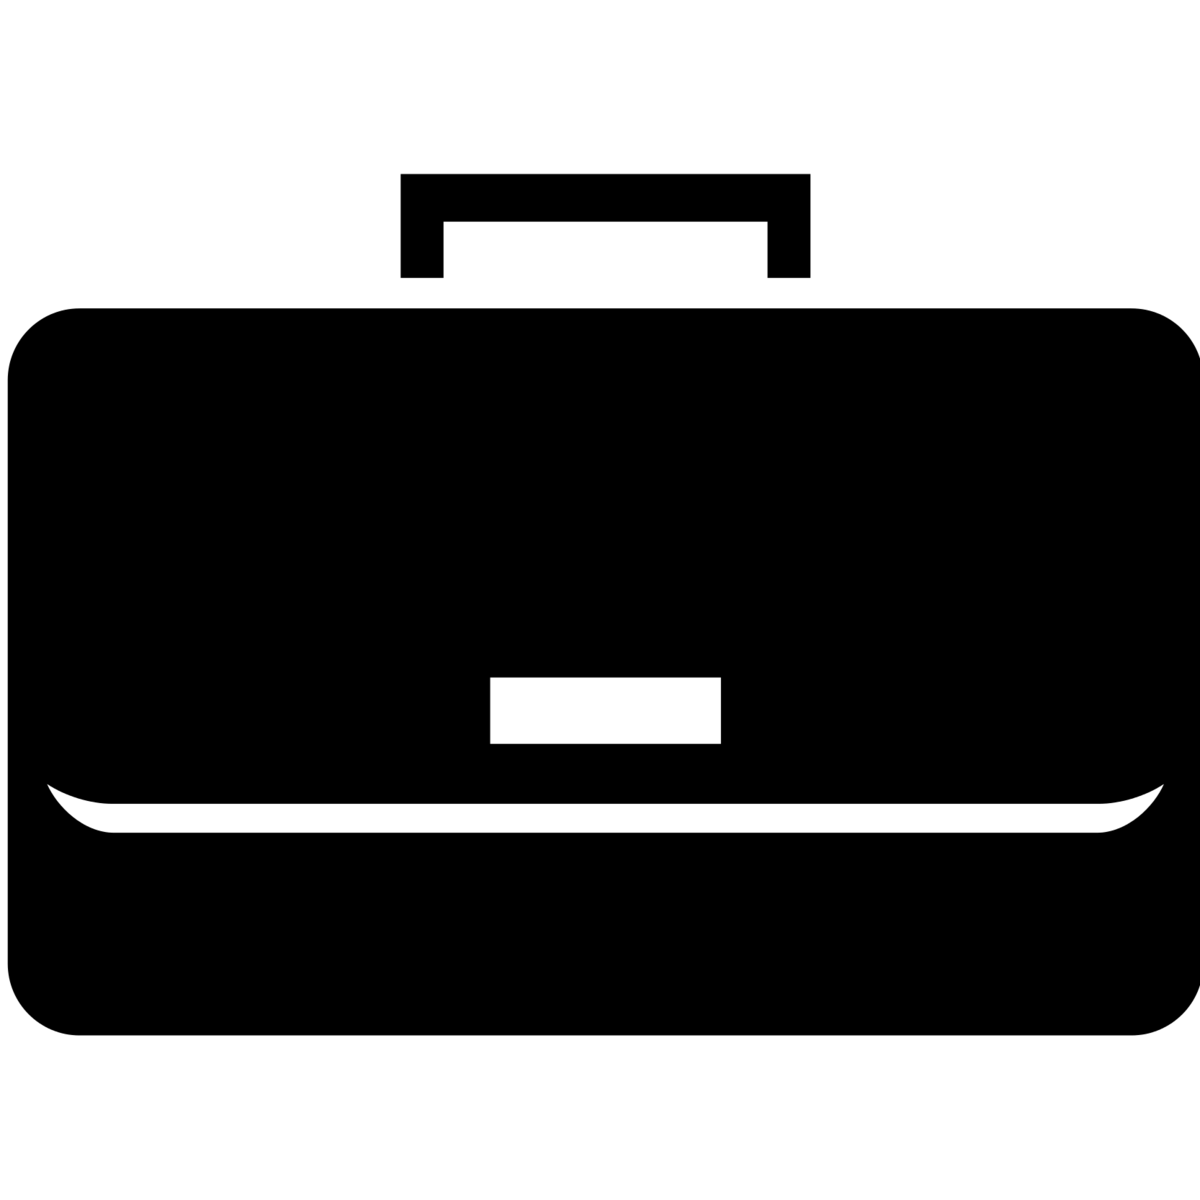 Suitcase coloring page free. Business clipart briefcase